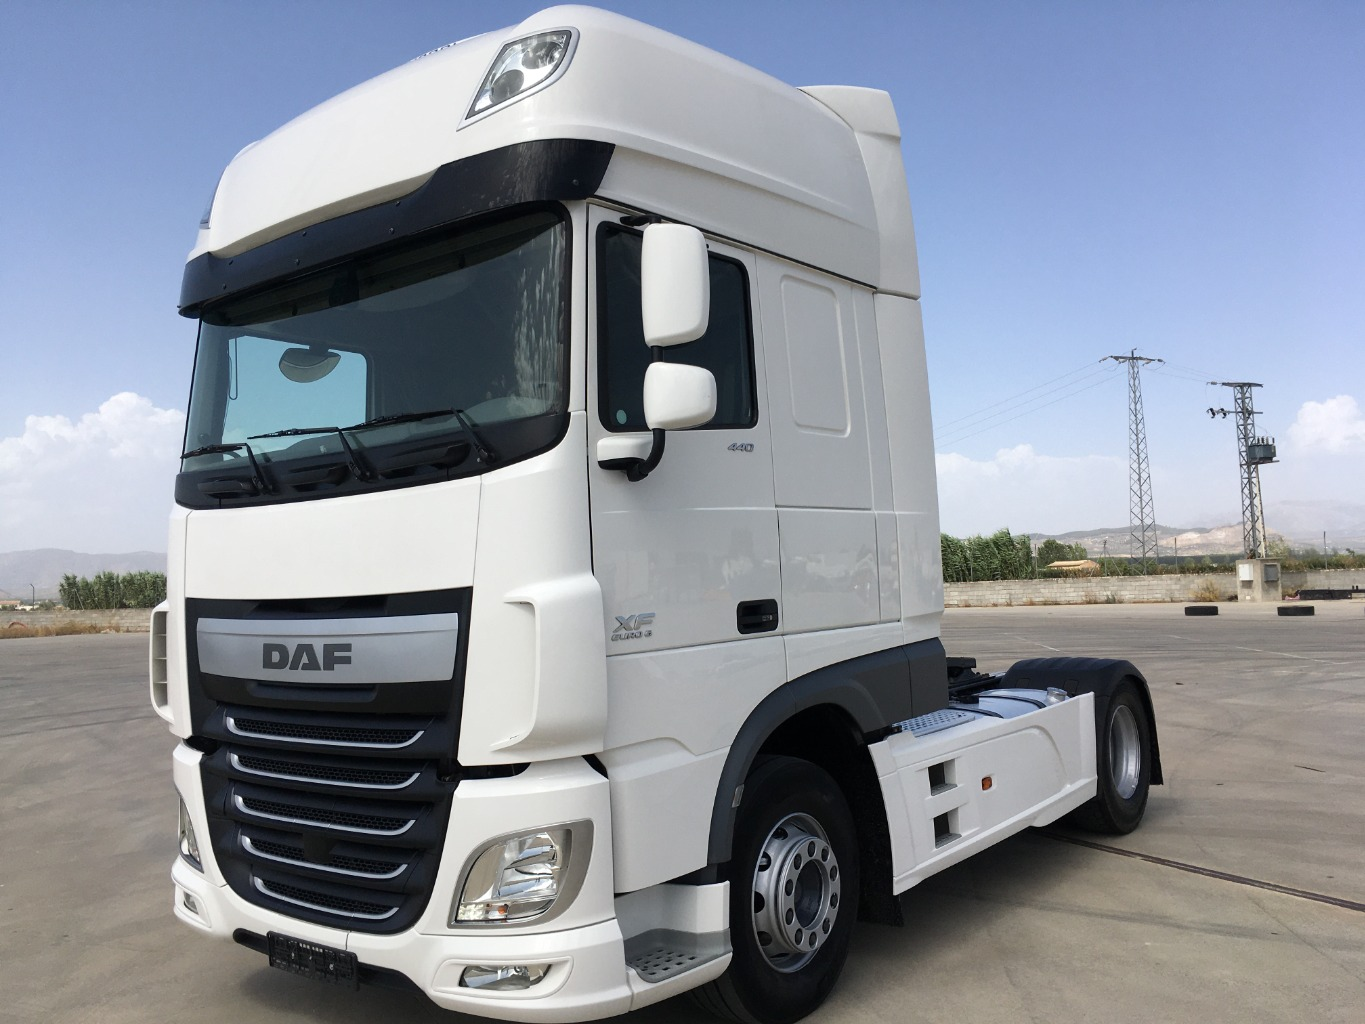 DAF FT XF 440 SSC